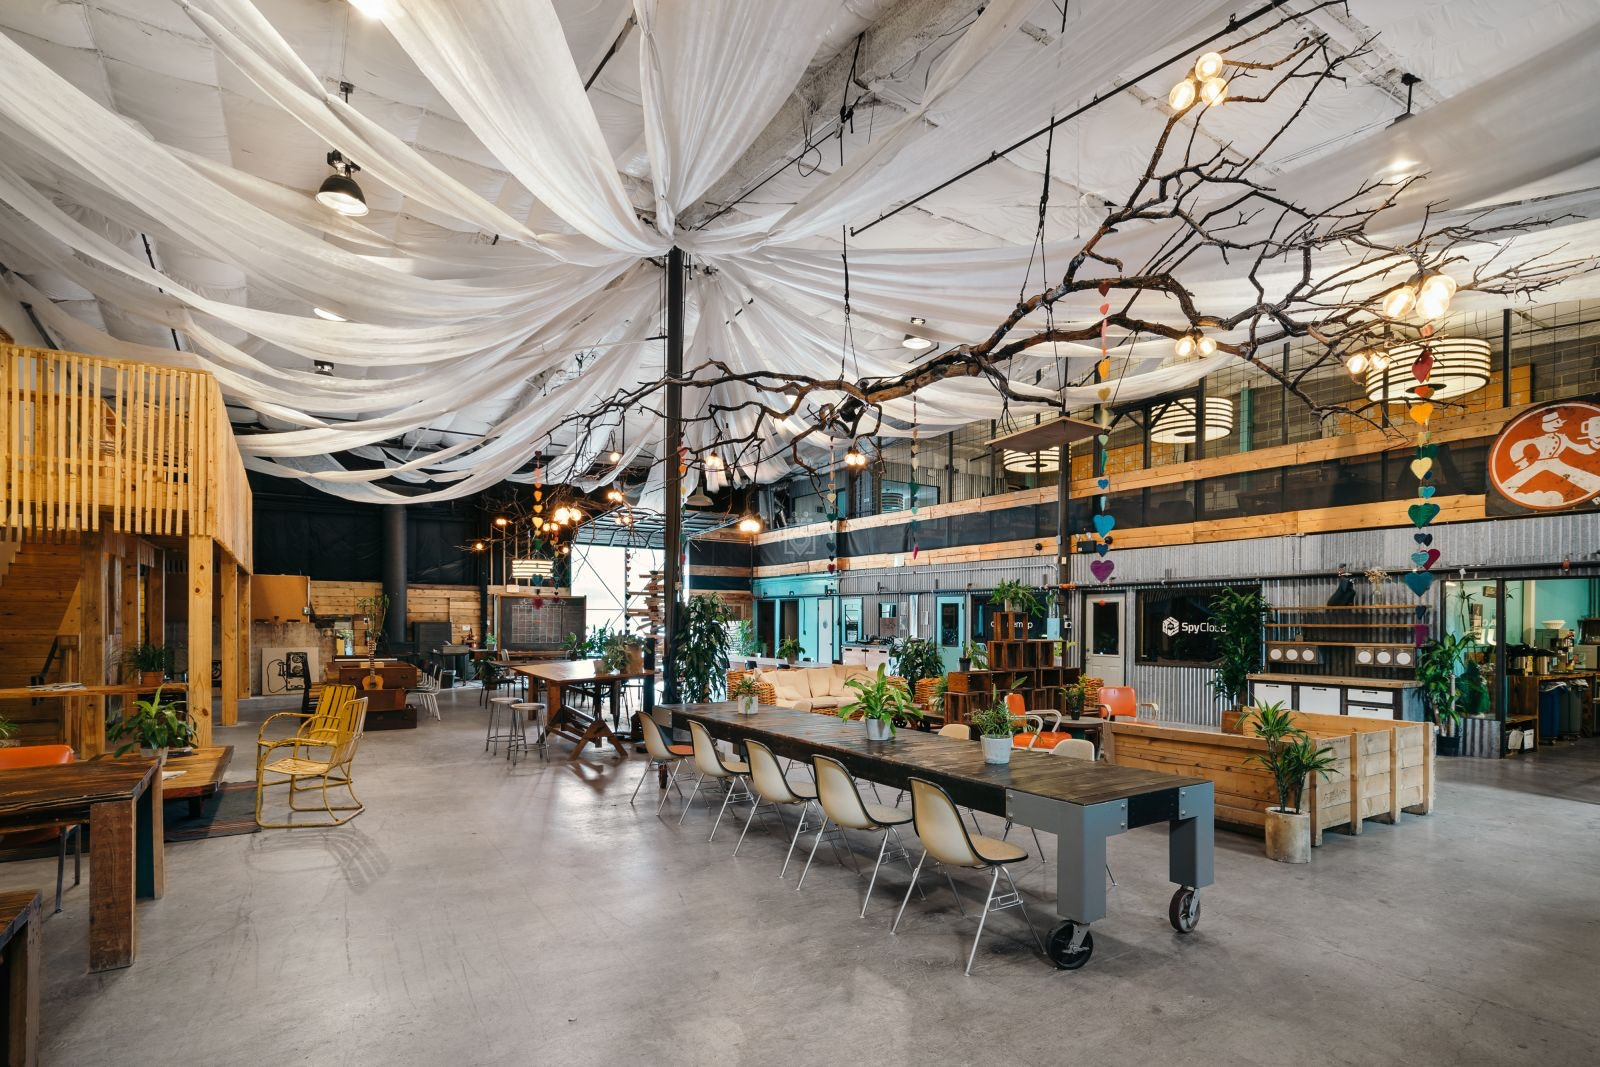 Coworking Space Austin: 15 Best Spaces with Pricing, Amenities & Location [2021] 32